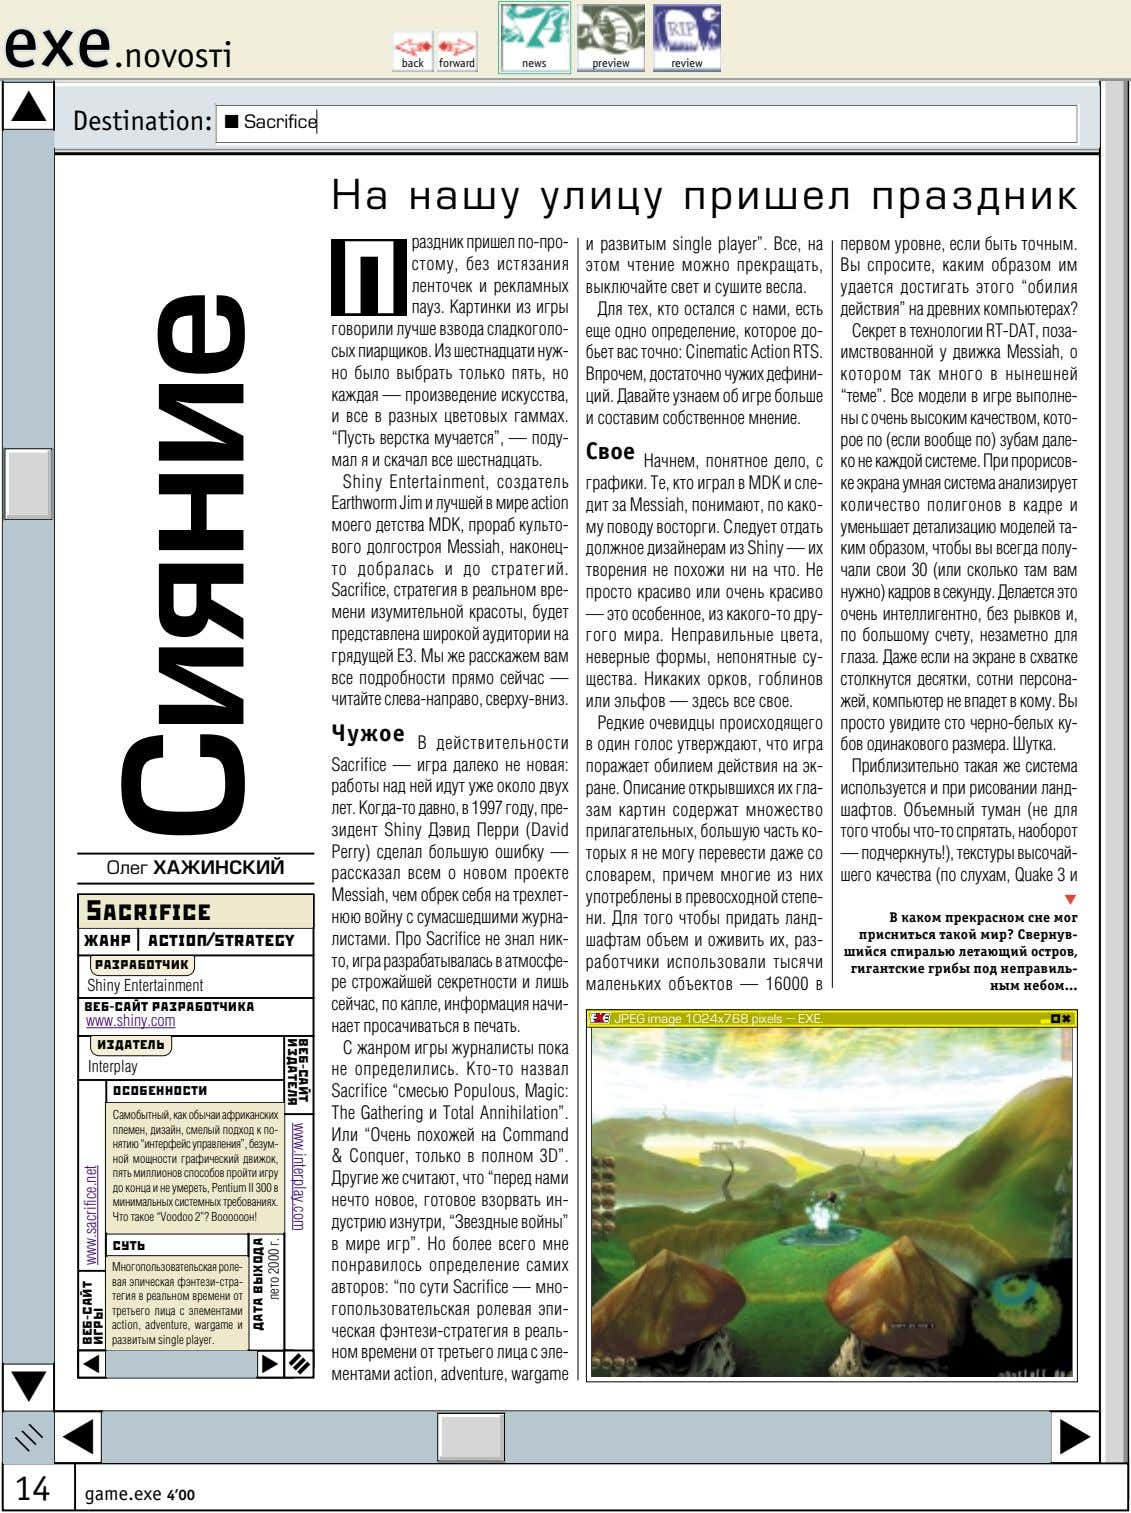 exe.novosтi back forward news preview review Destination: Sacrifice Íà íàøó óëèöó ïðèøåë